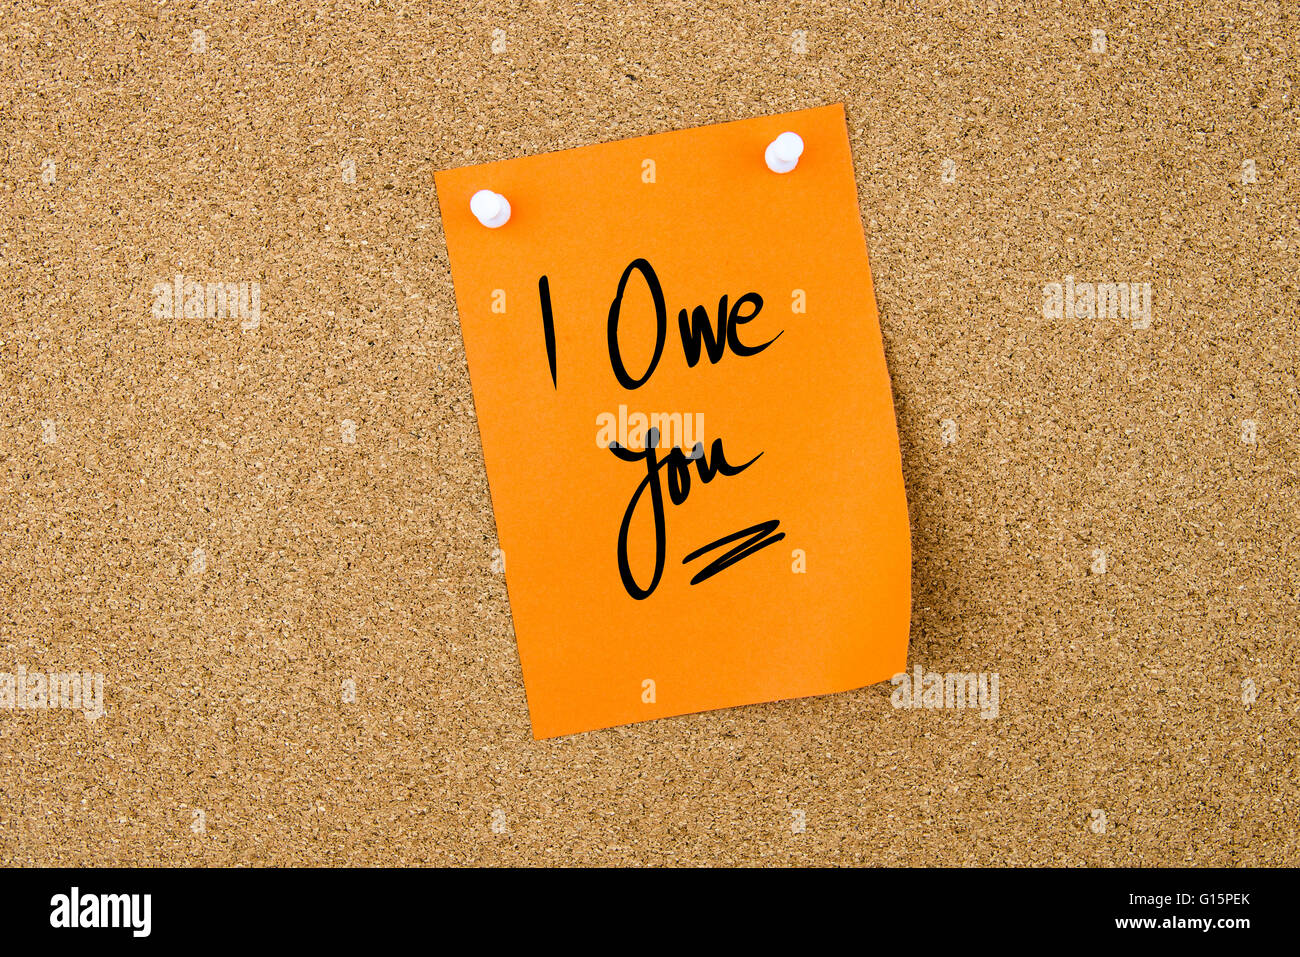 I Owe You written on orange paper note pinned on cork board with white thumbtacks, copy space available - Stock Image